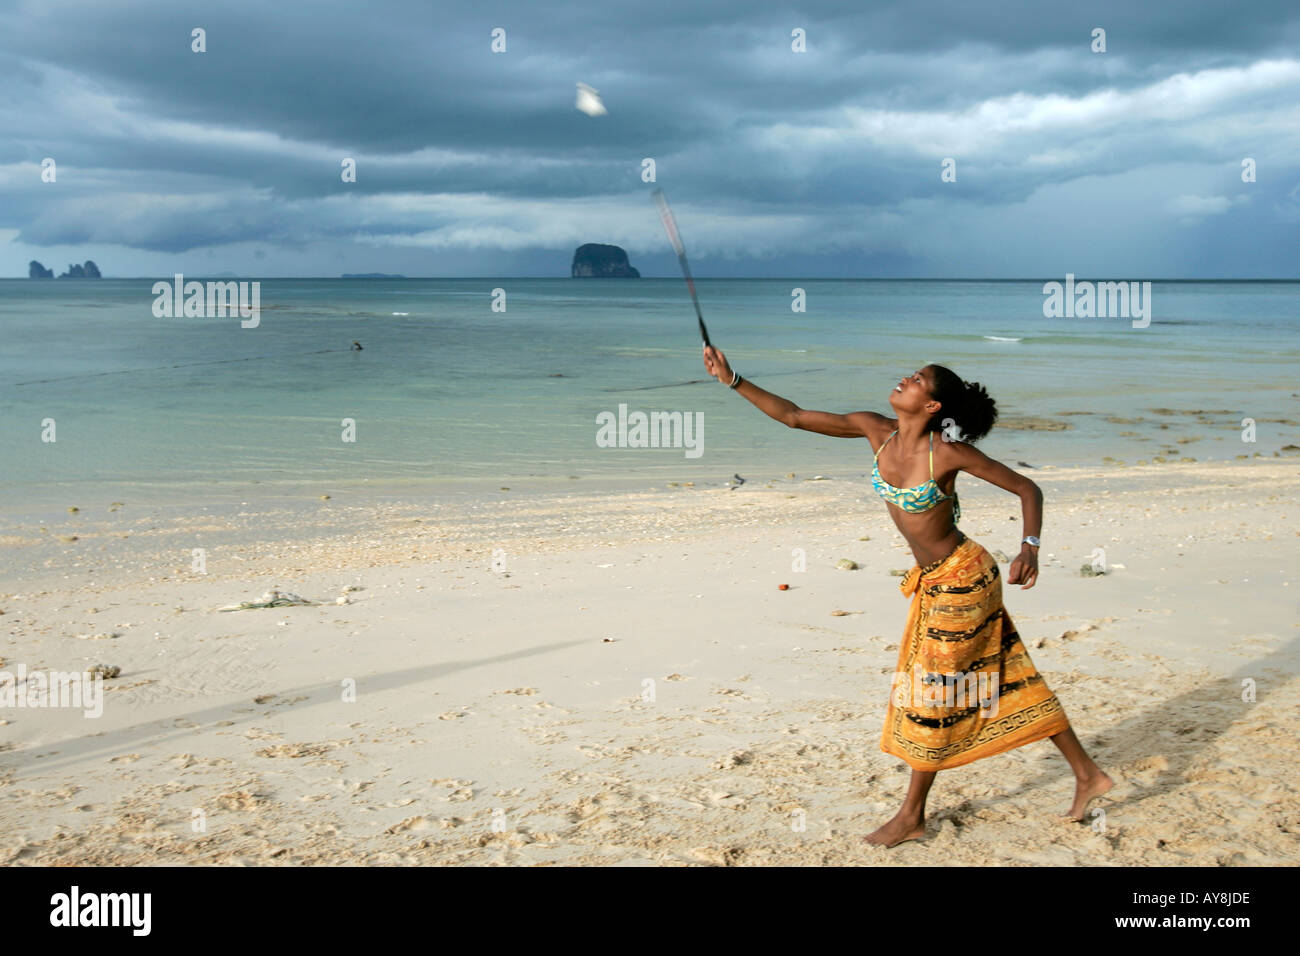 junge frau im bikini sarong spielt badminton am strand koh bulon leh insel thailand stockfoto. Black Bedroom Furniture Sets. Home Design Ideas